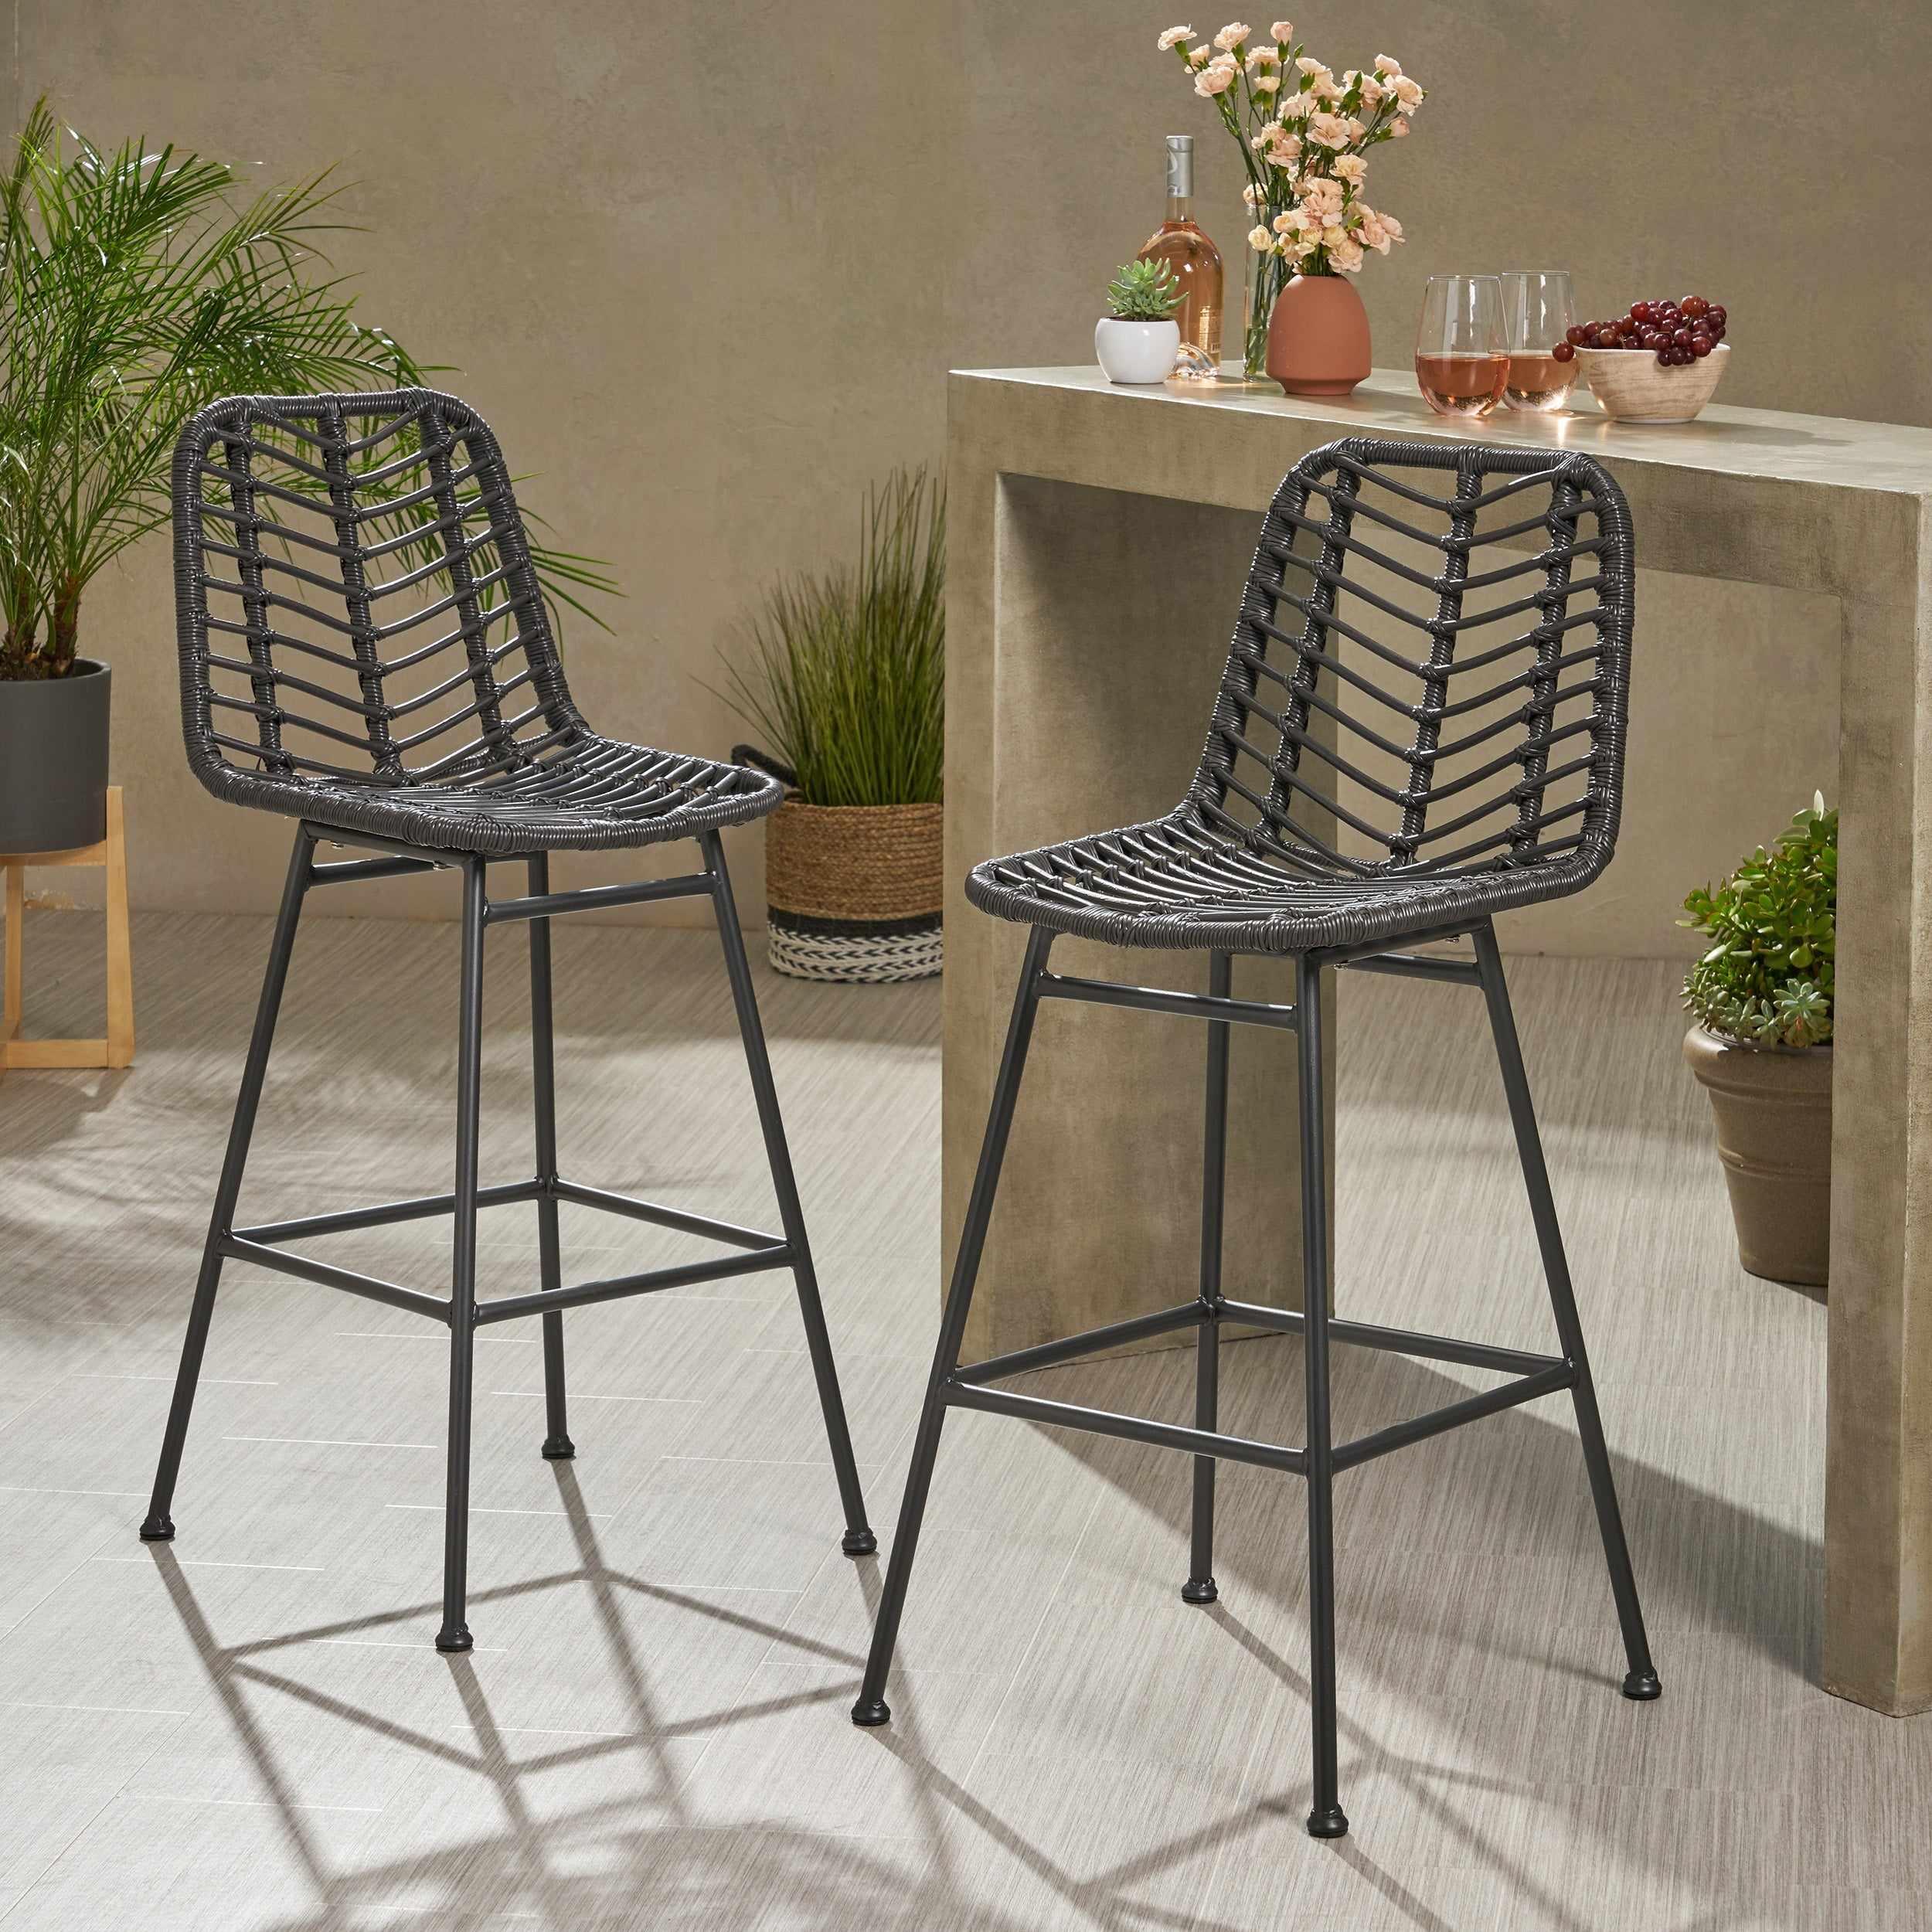 Set of 2 BOWERY HILL Outdoor Wicker Bar Stools in Espresso